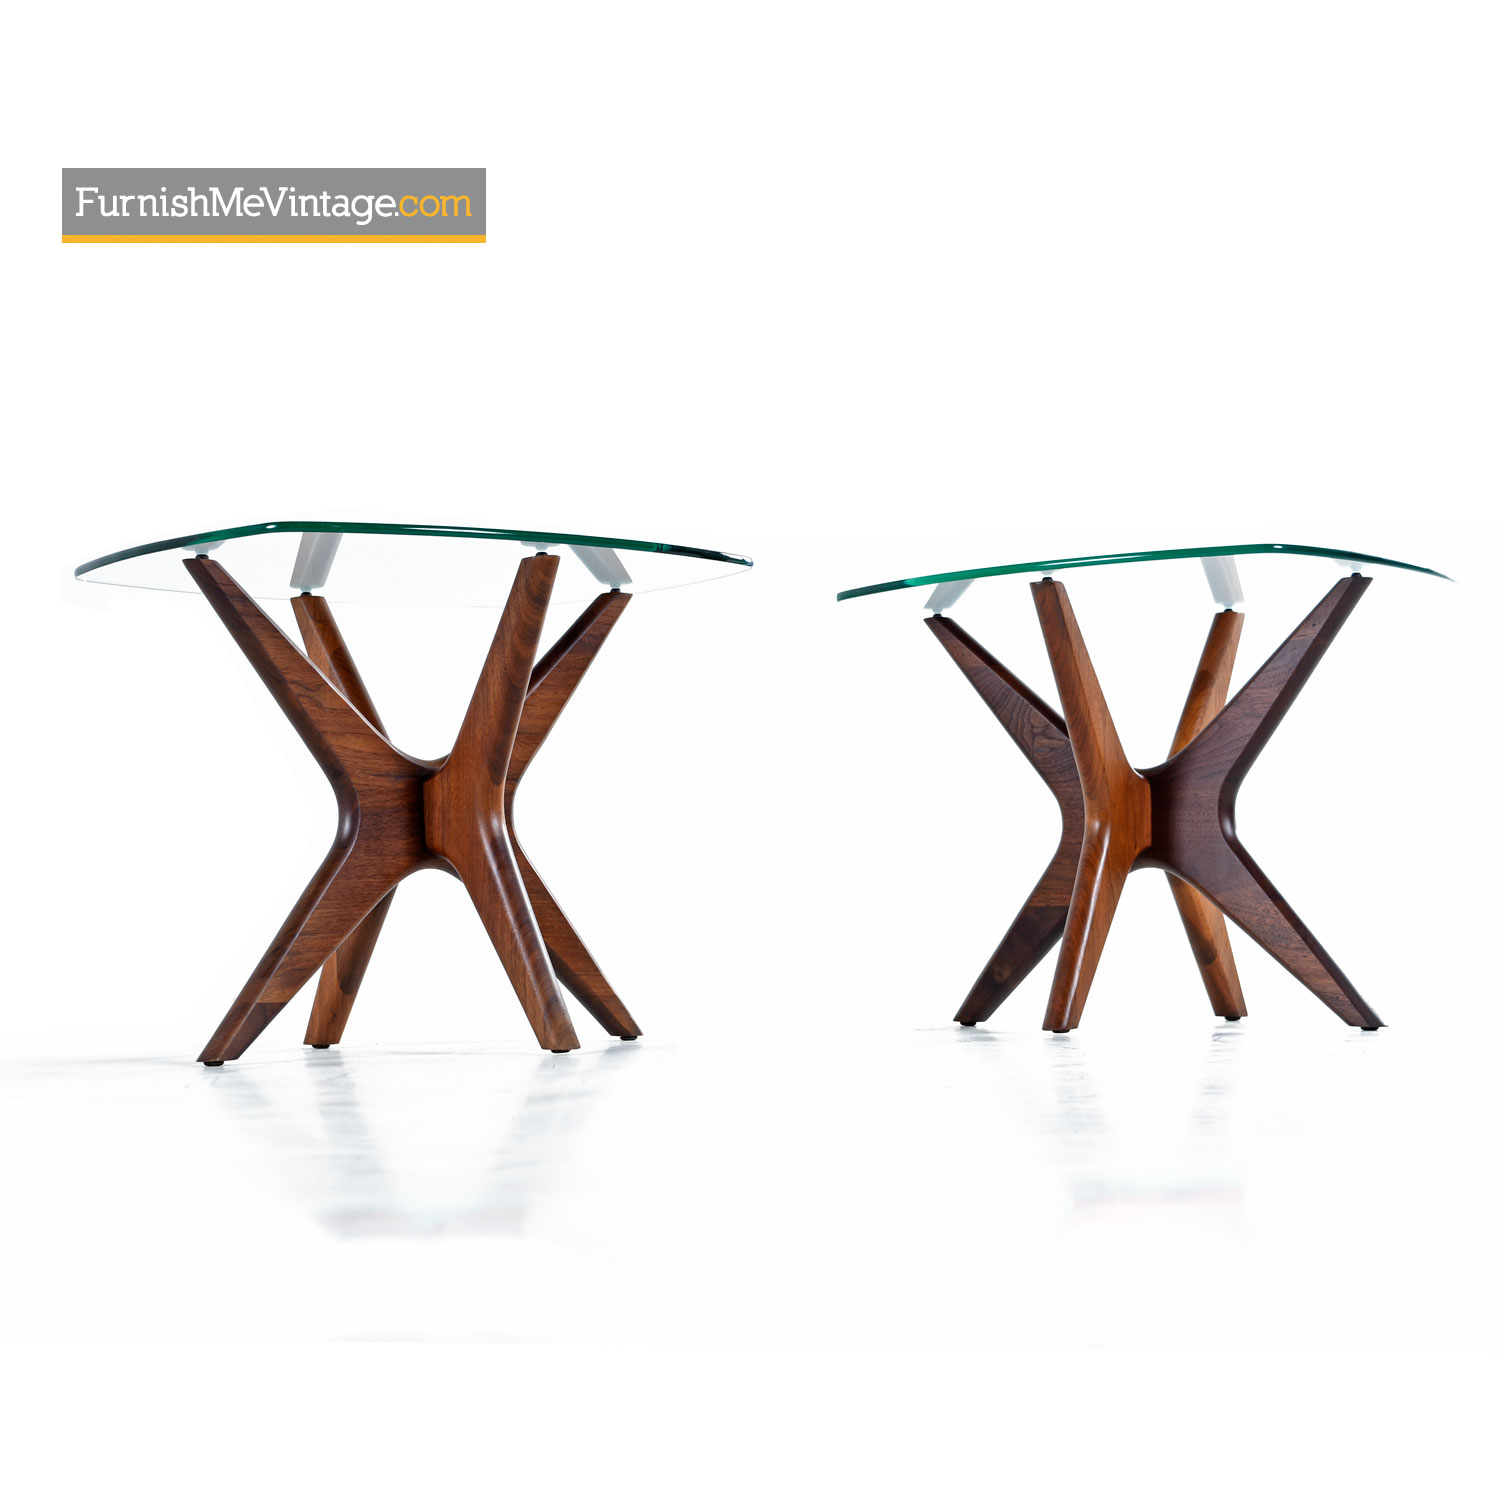 Adrian Pearsall Jacks End Table Set Walnut Glass